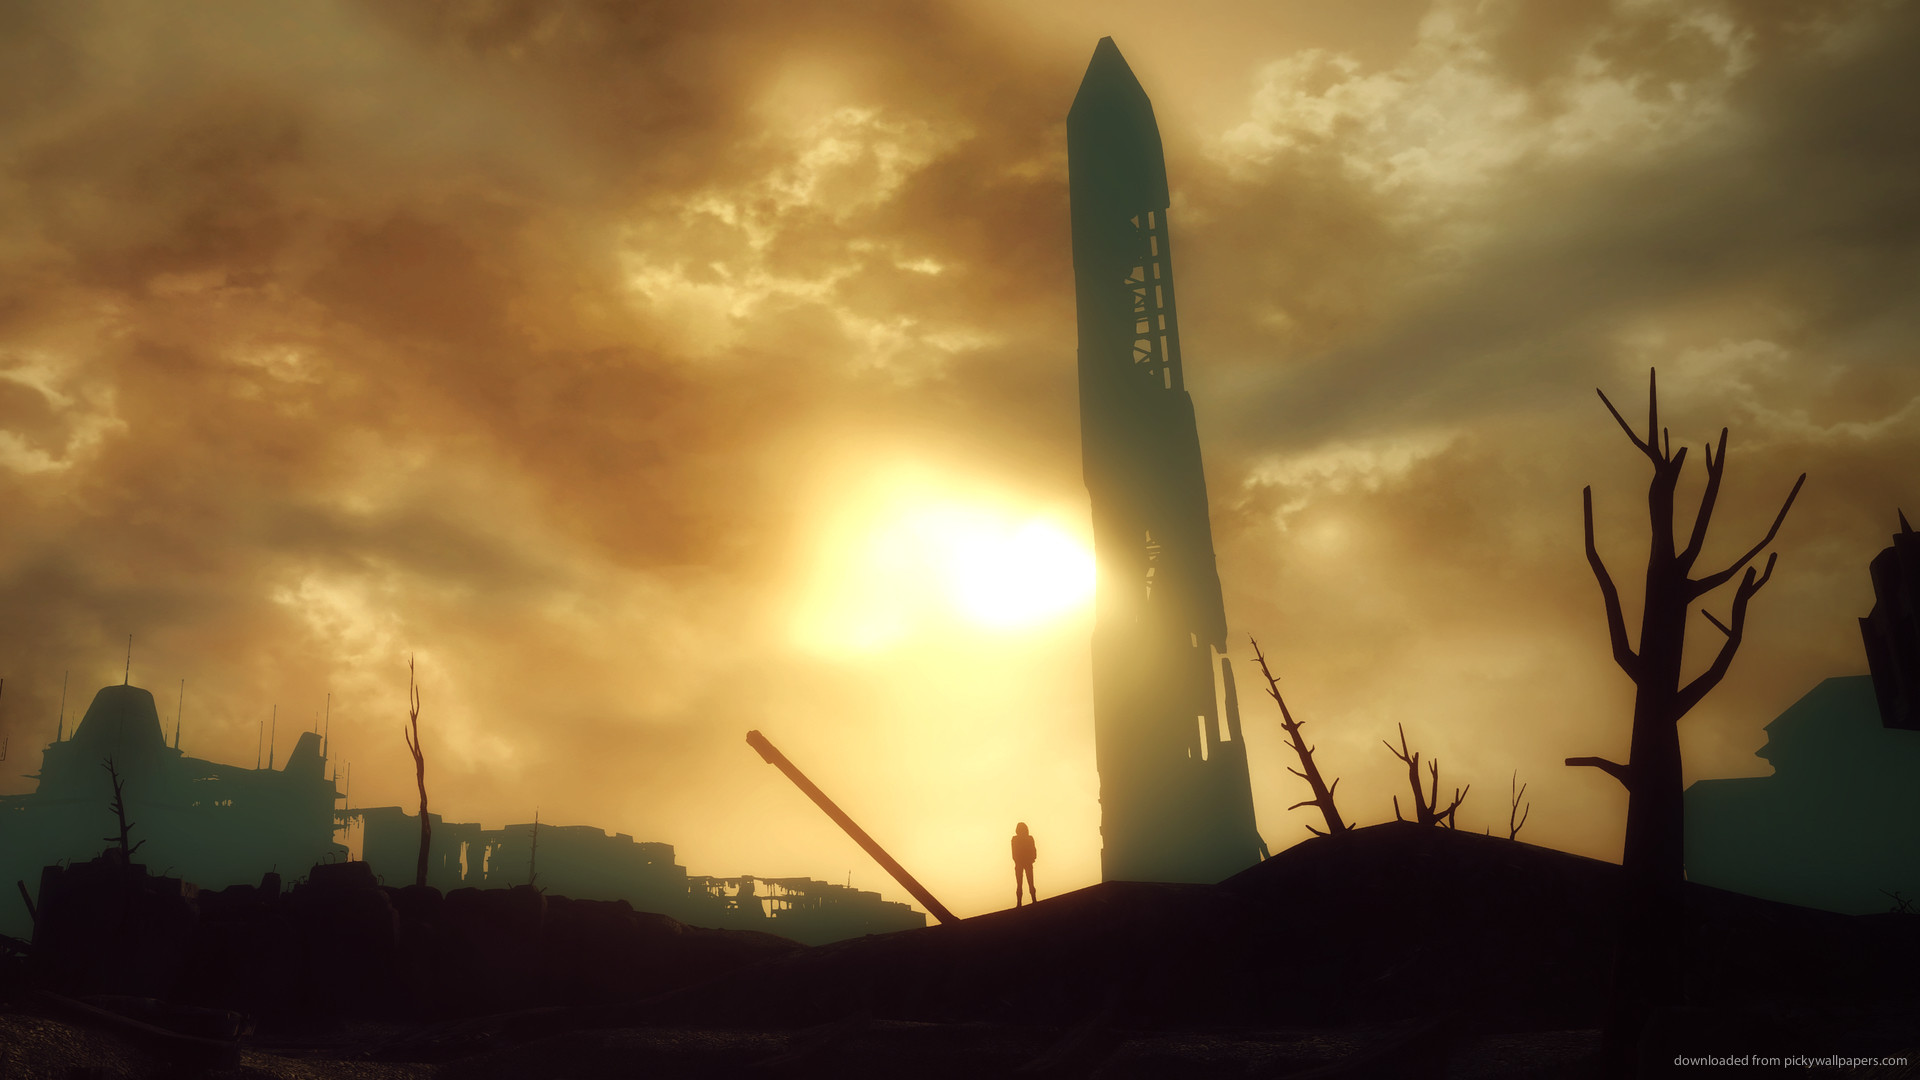 1920x1080 Fallout 3 Sunset Over the Monument for